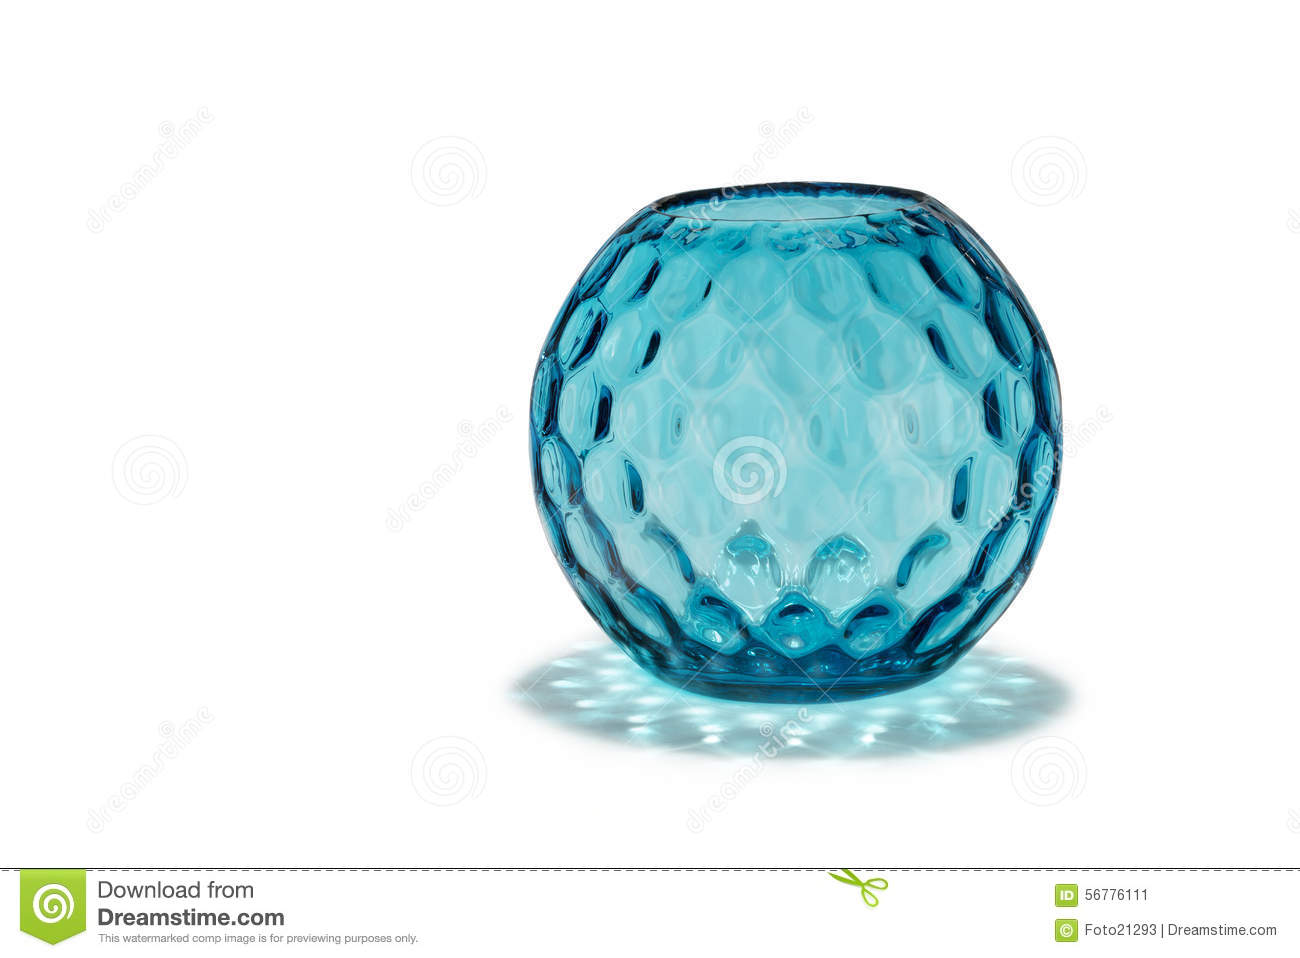 Antique glass vase round and patterned dimple effect stock image antique glass vase round and patterned dimple effect reviewsmspy